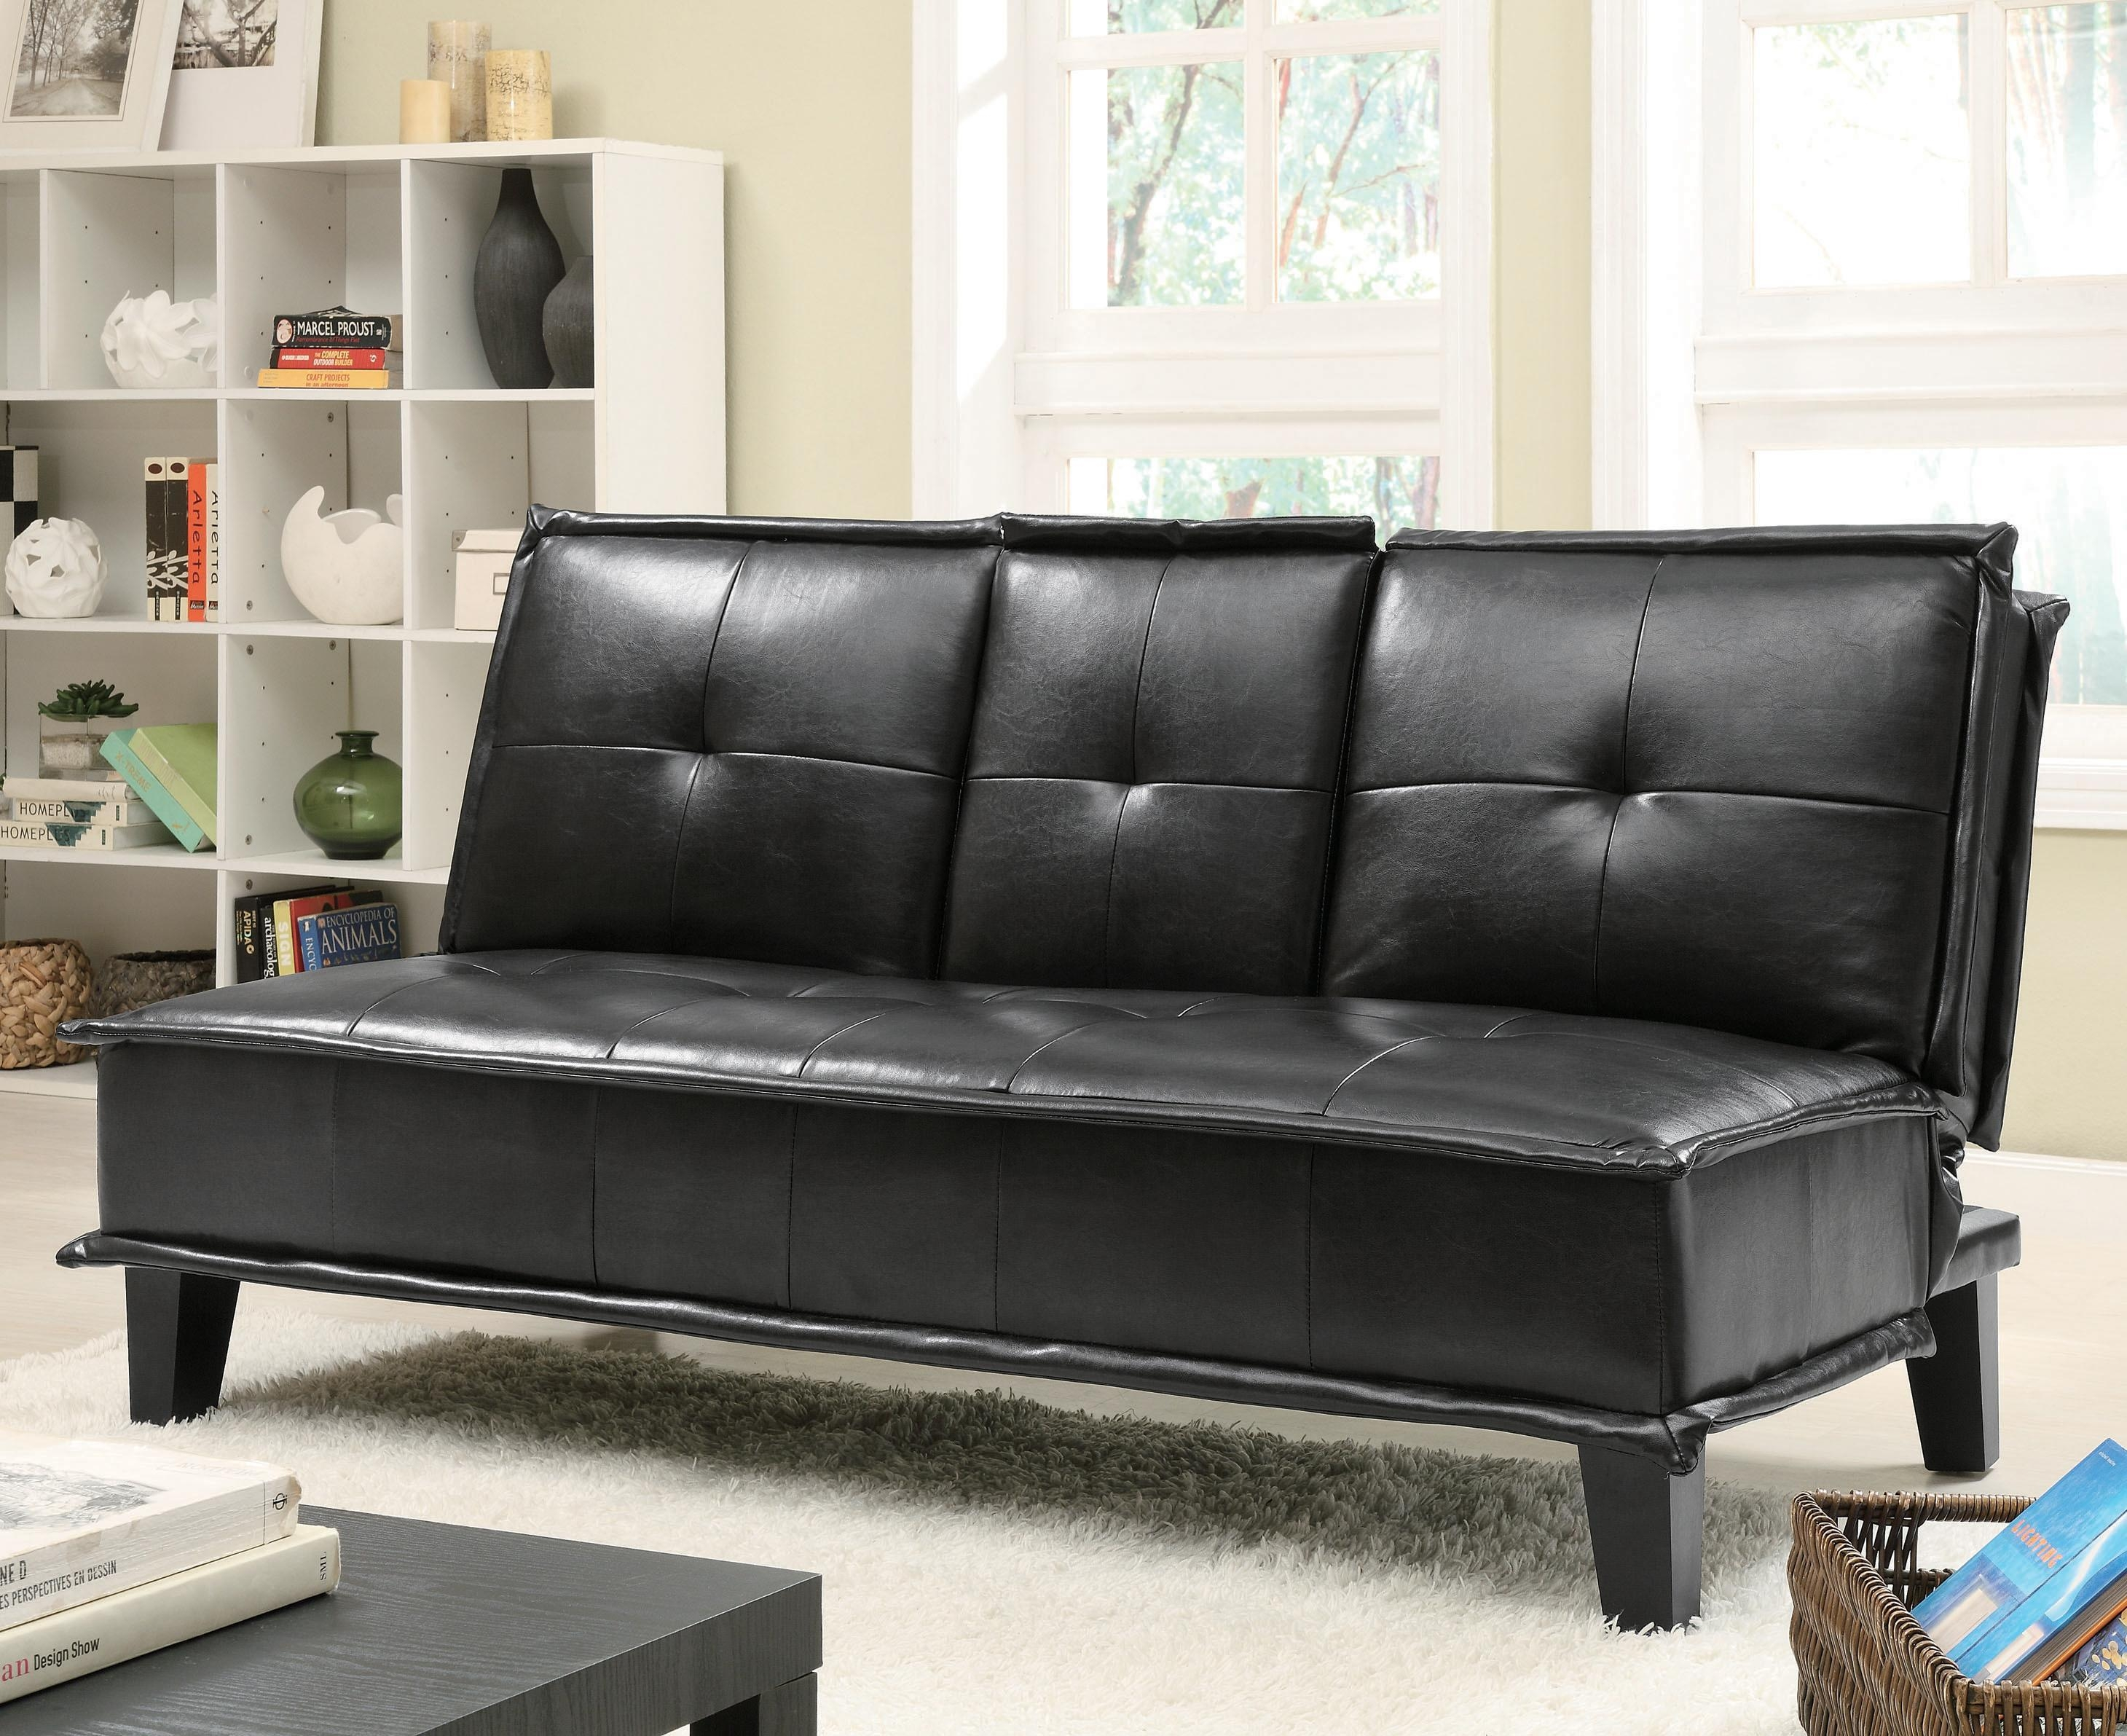 Vinyl Sofa Bed With Drop Down Table In Black Vinyl Sofas (Image 20 of 20)